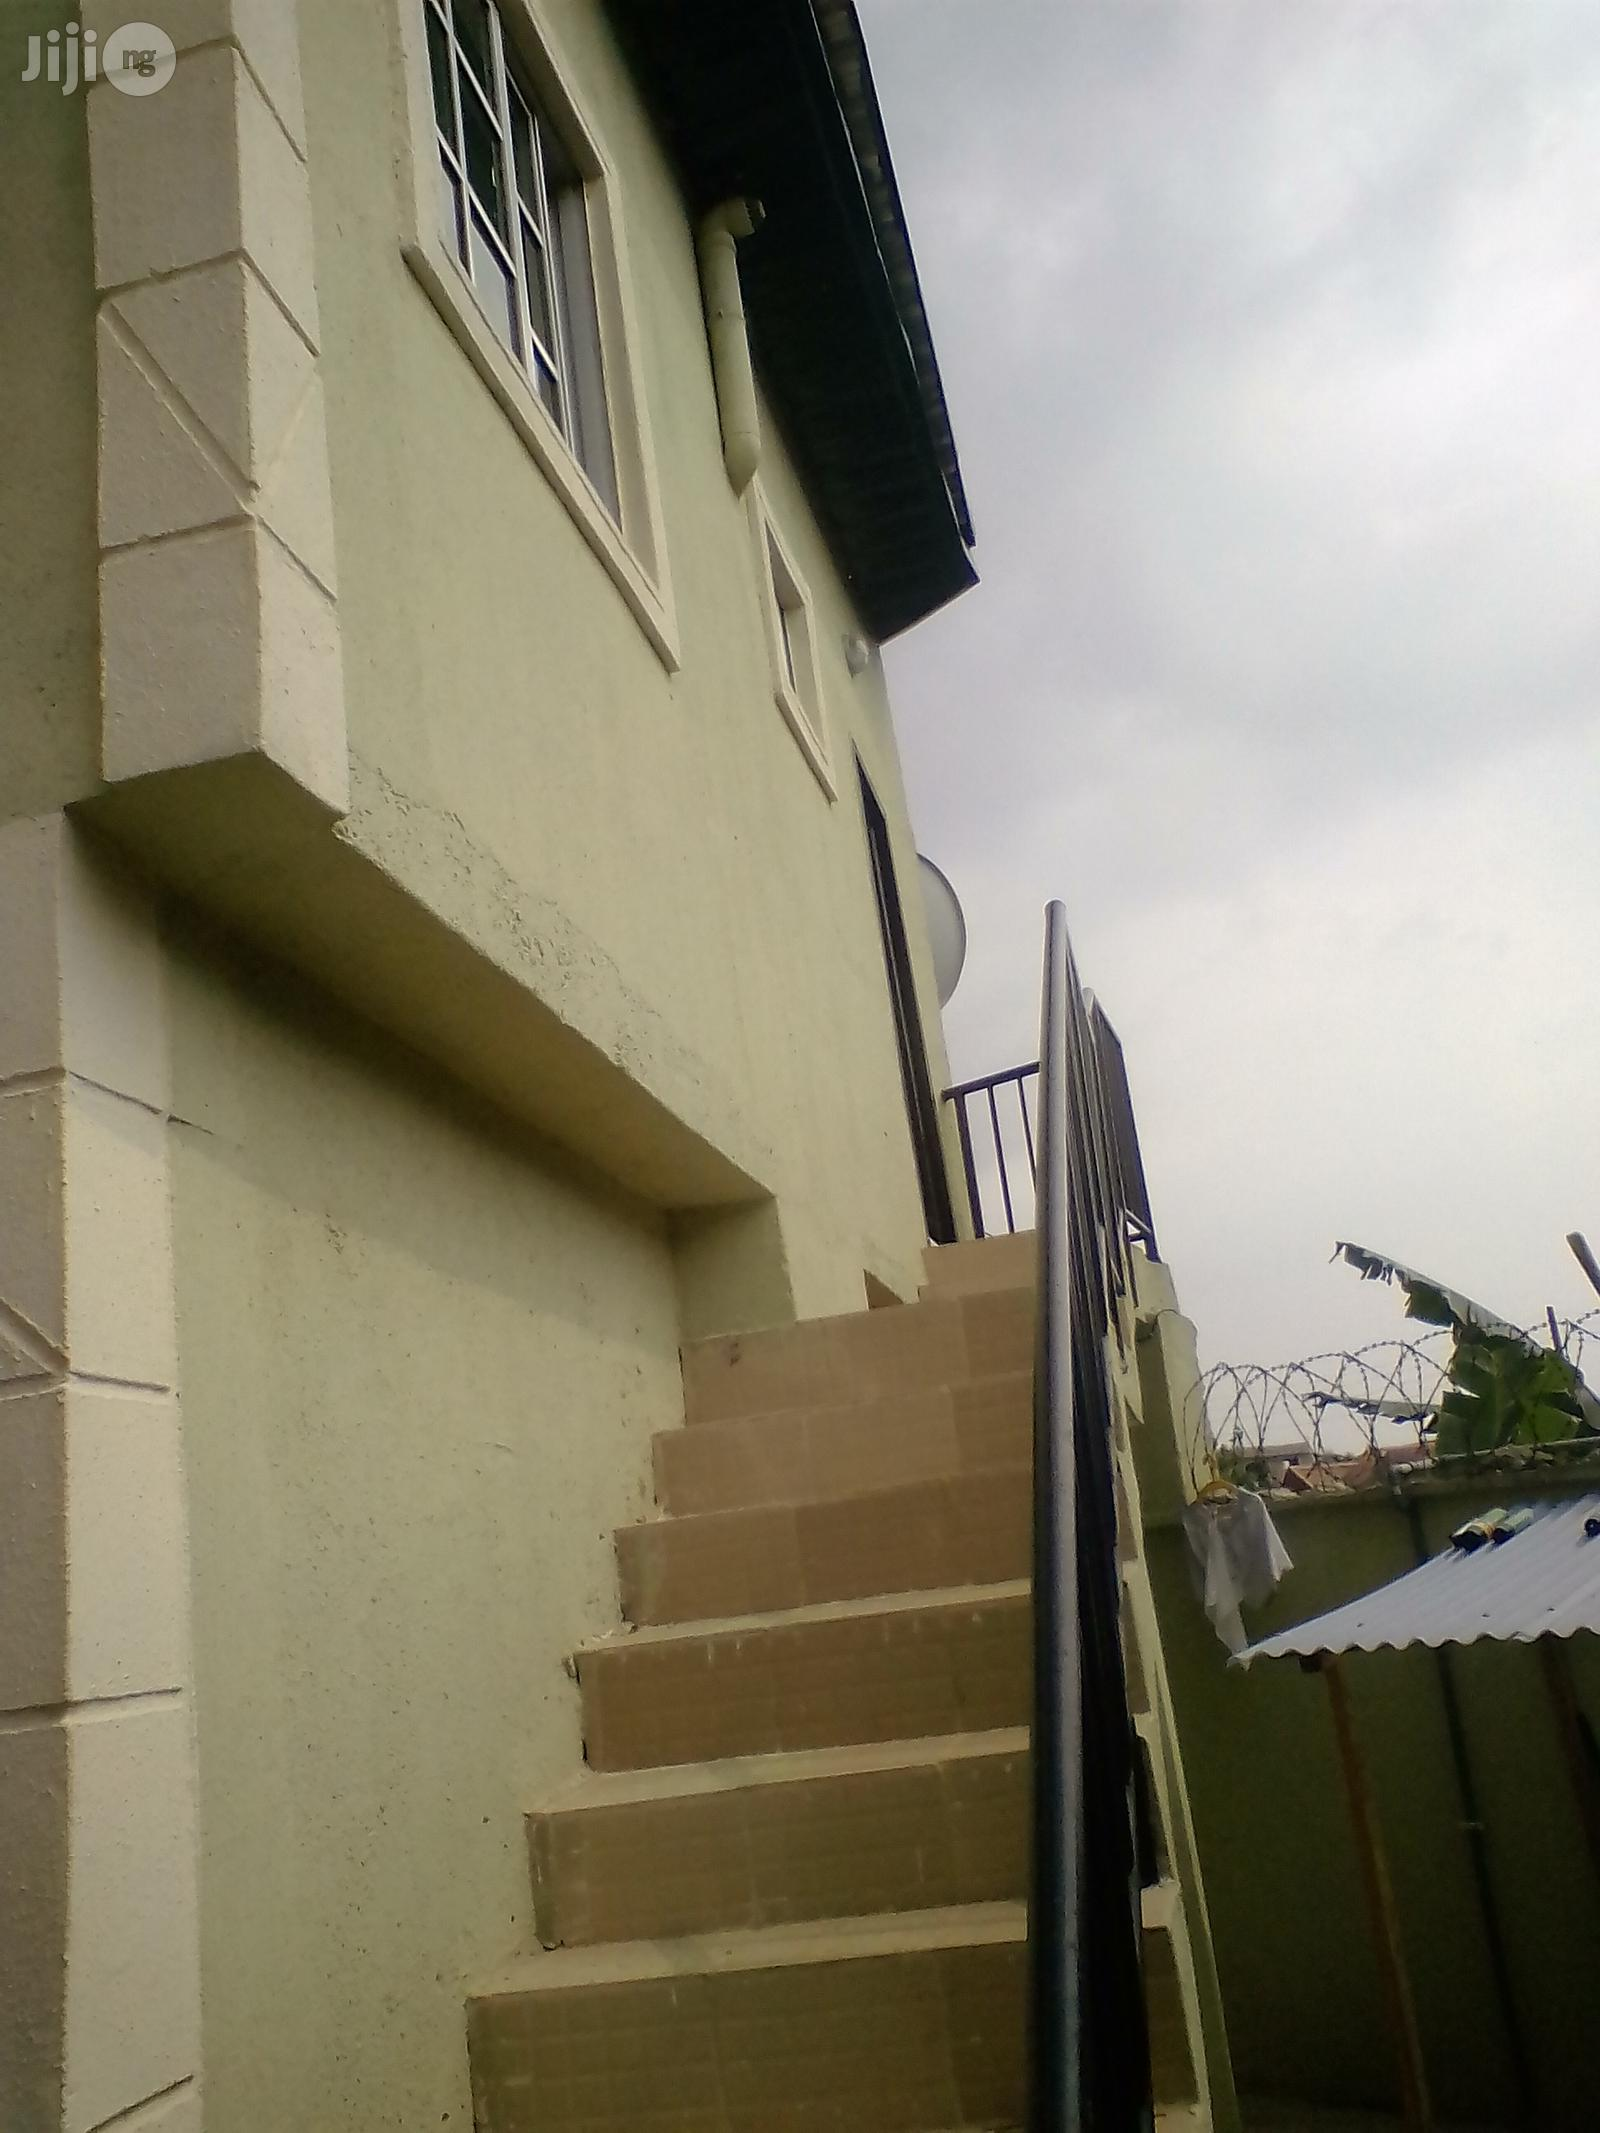 Self Contain Apartment At Bucknor For Rent.